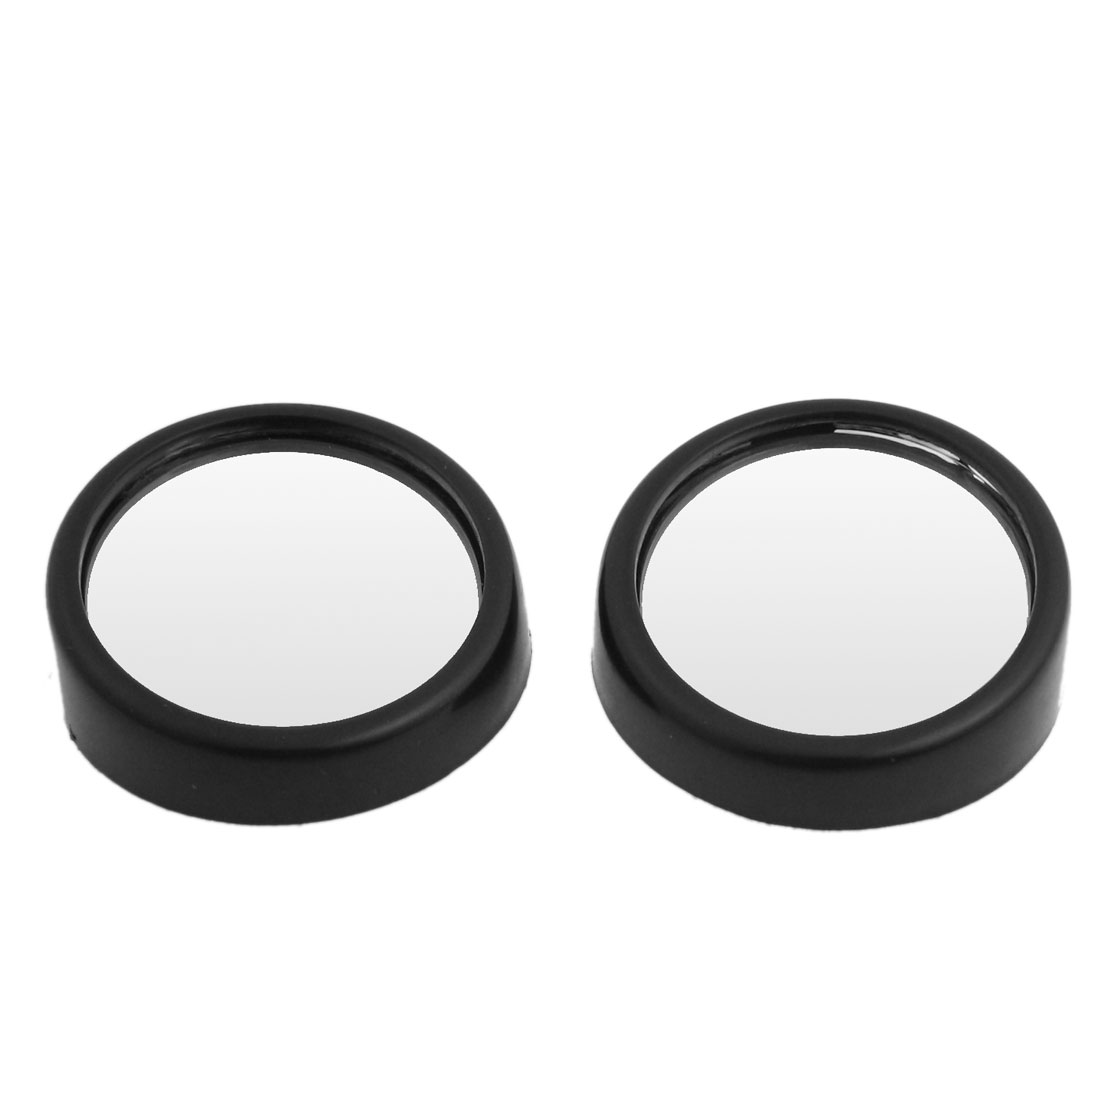 "Auto Car Safety 1.6"" Stick On Rear View Blind Spot Mirror Black 2 Pcs"